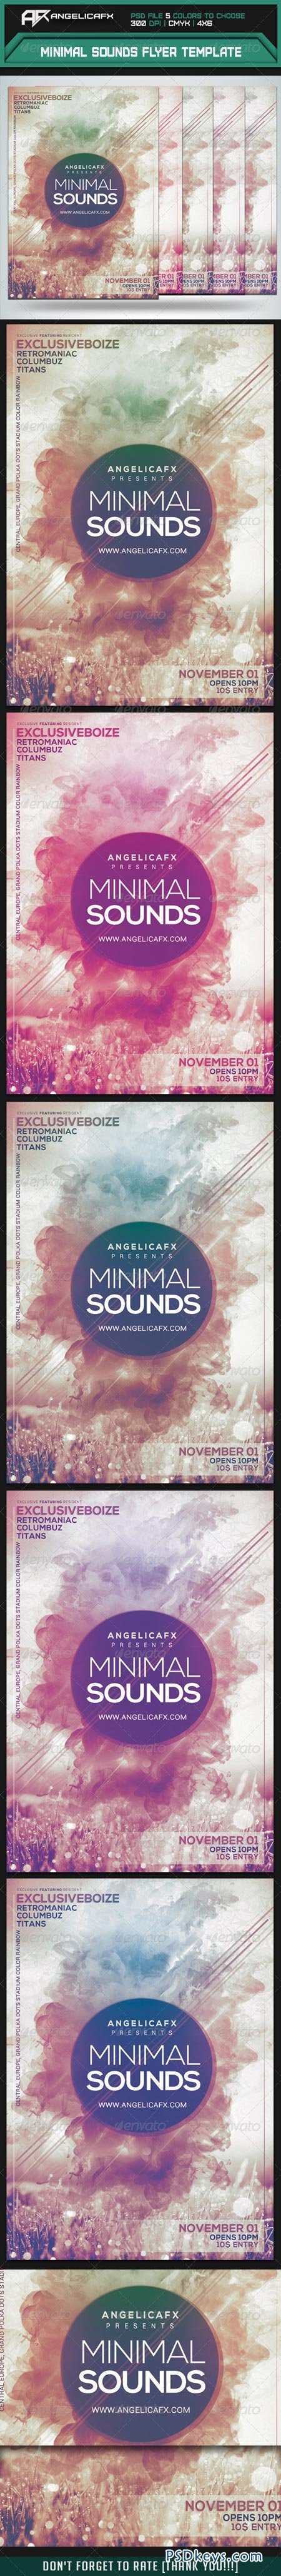 Minimal Sounds Flyer Template 8641969